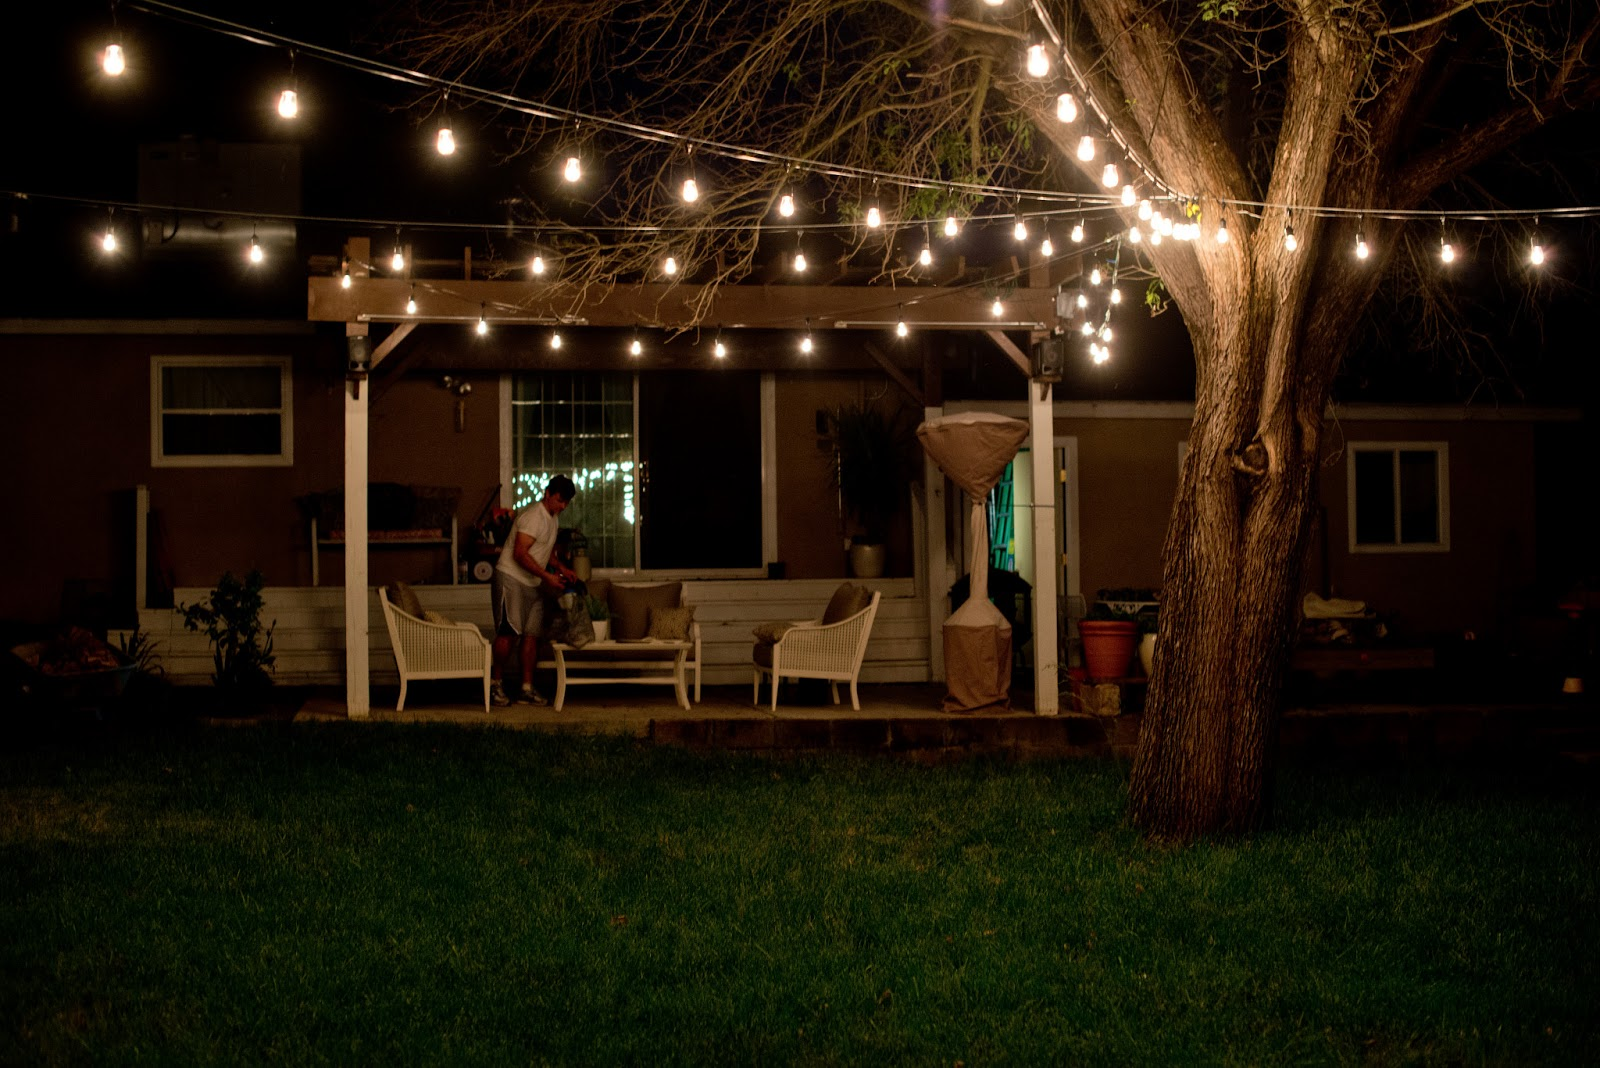 Backyard String Lights And Flowers - Home Design Elements